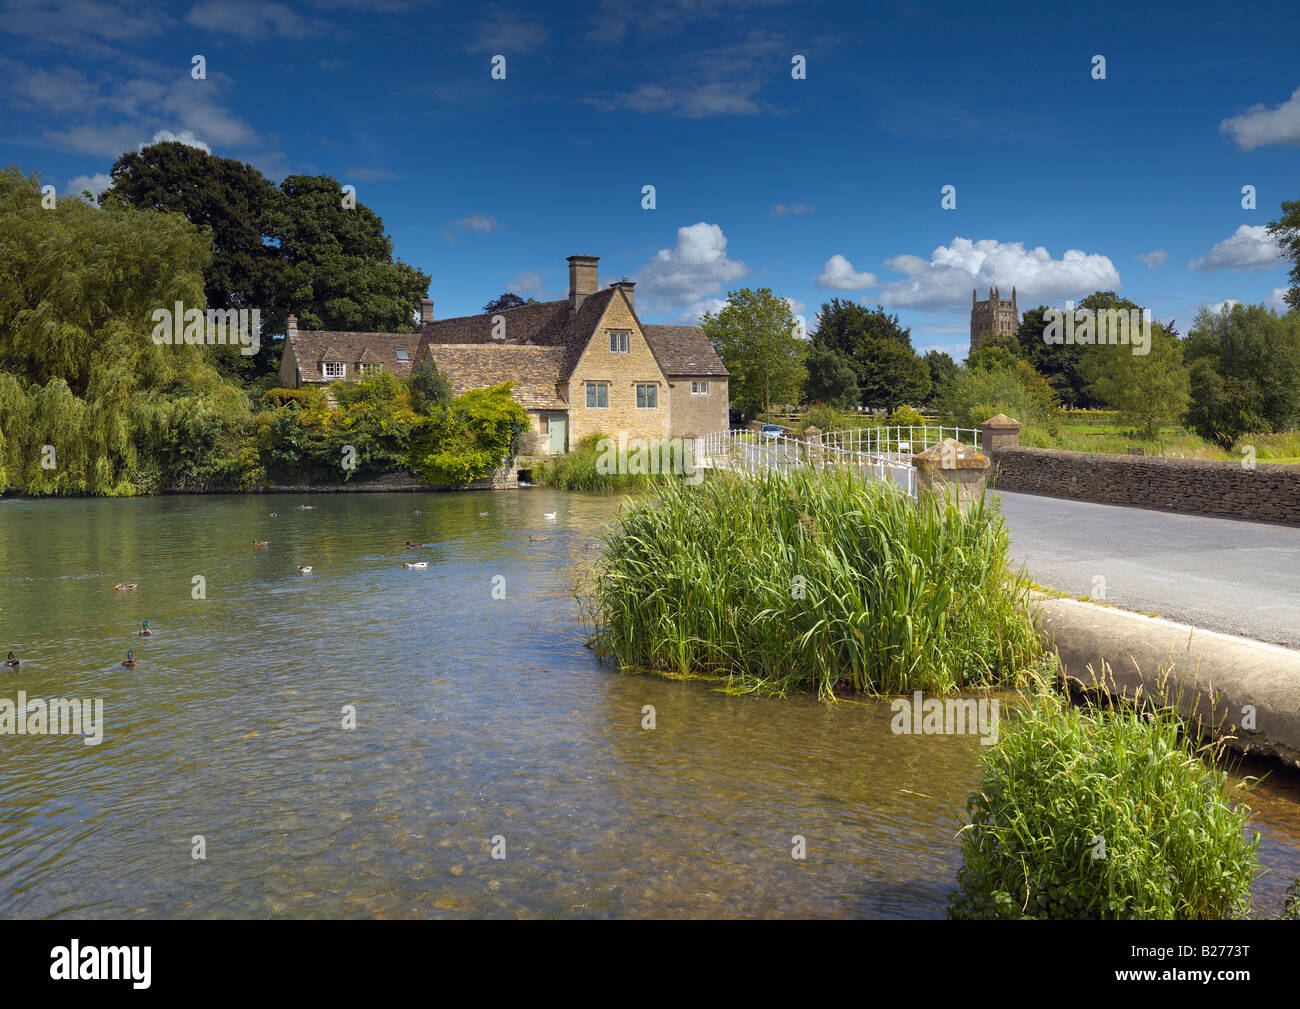 Fairford Mill in the Cotswolds - Stock Image